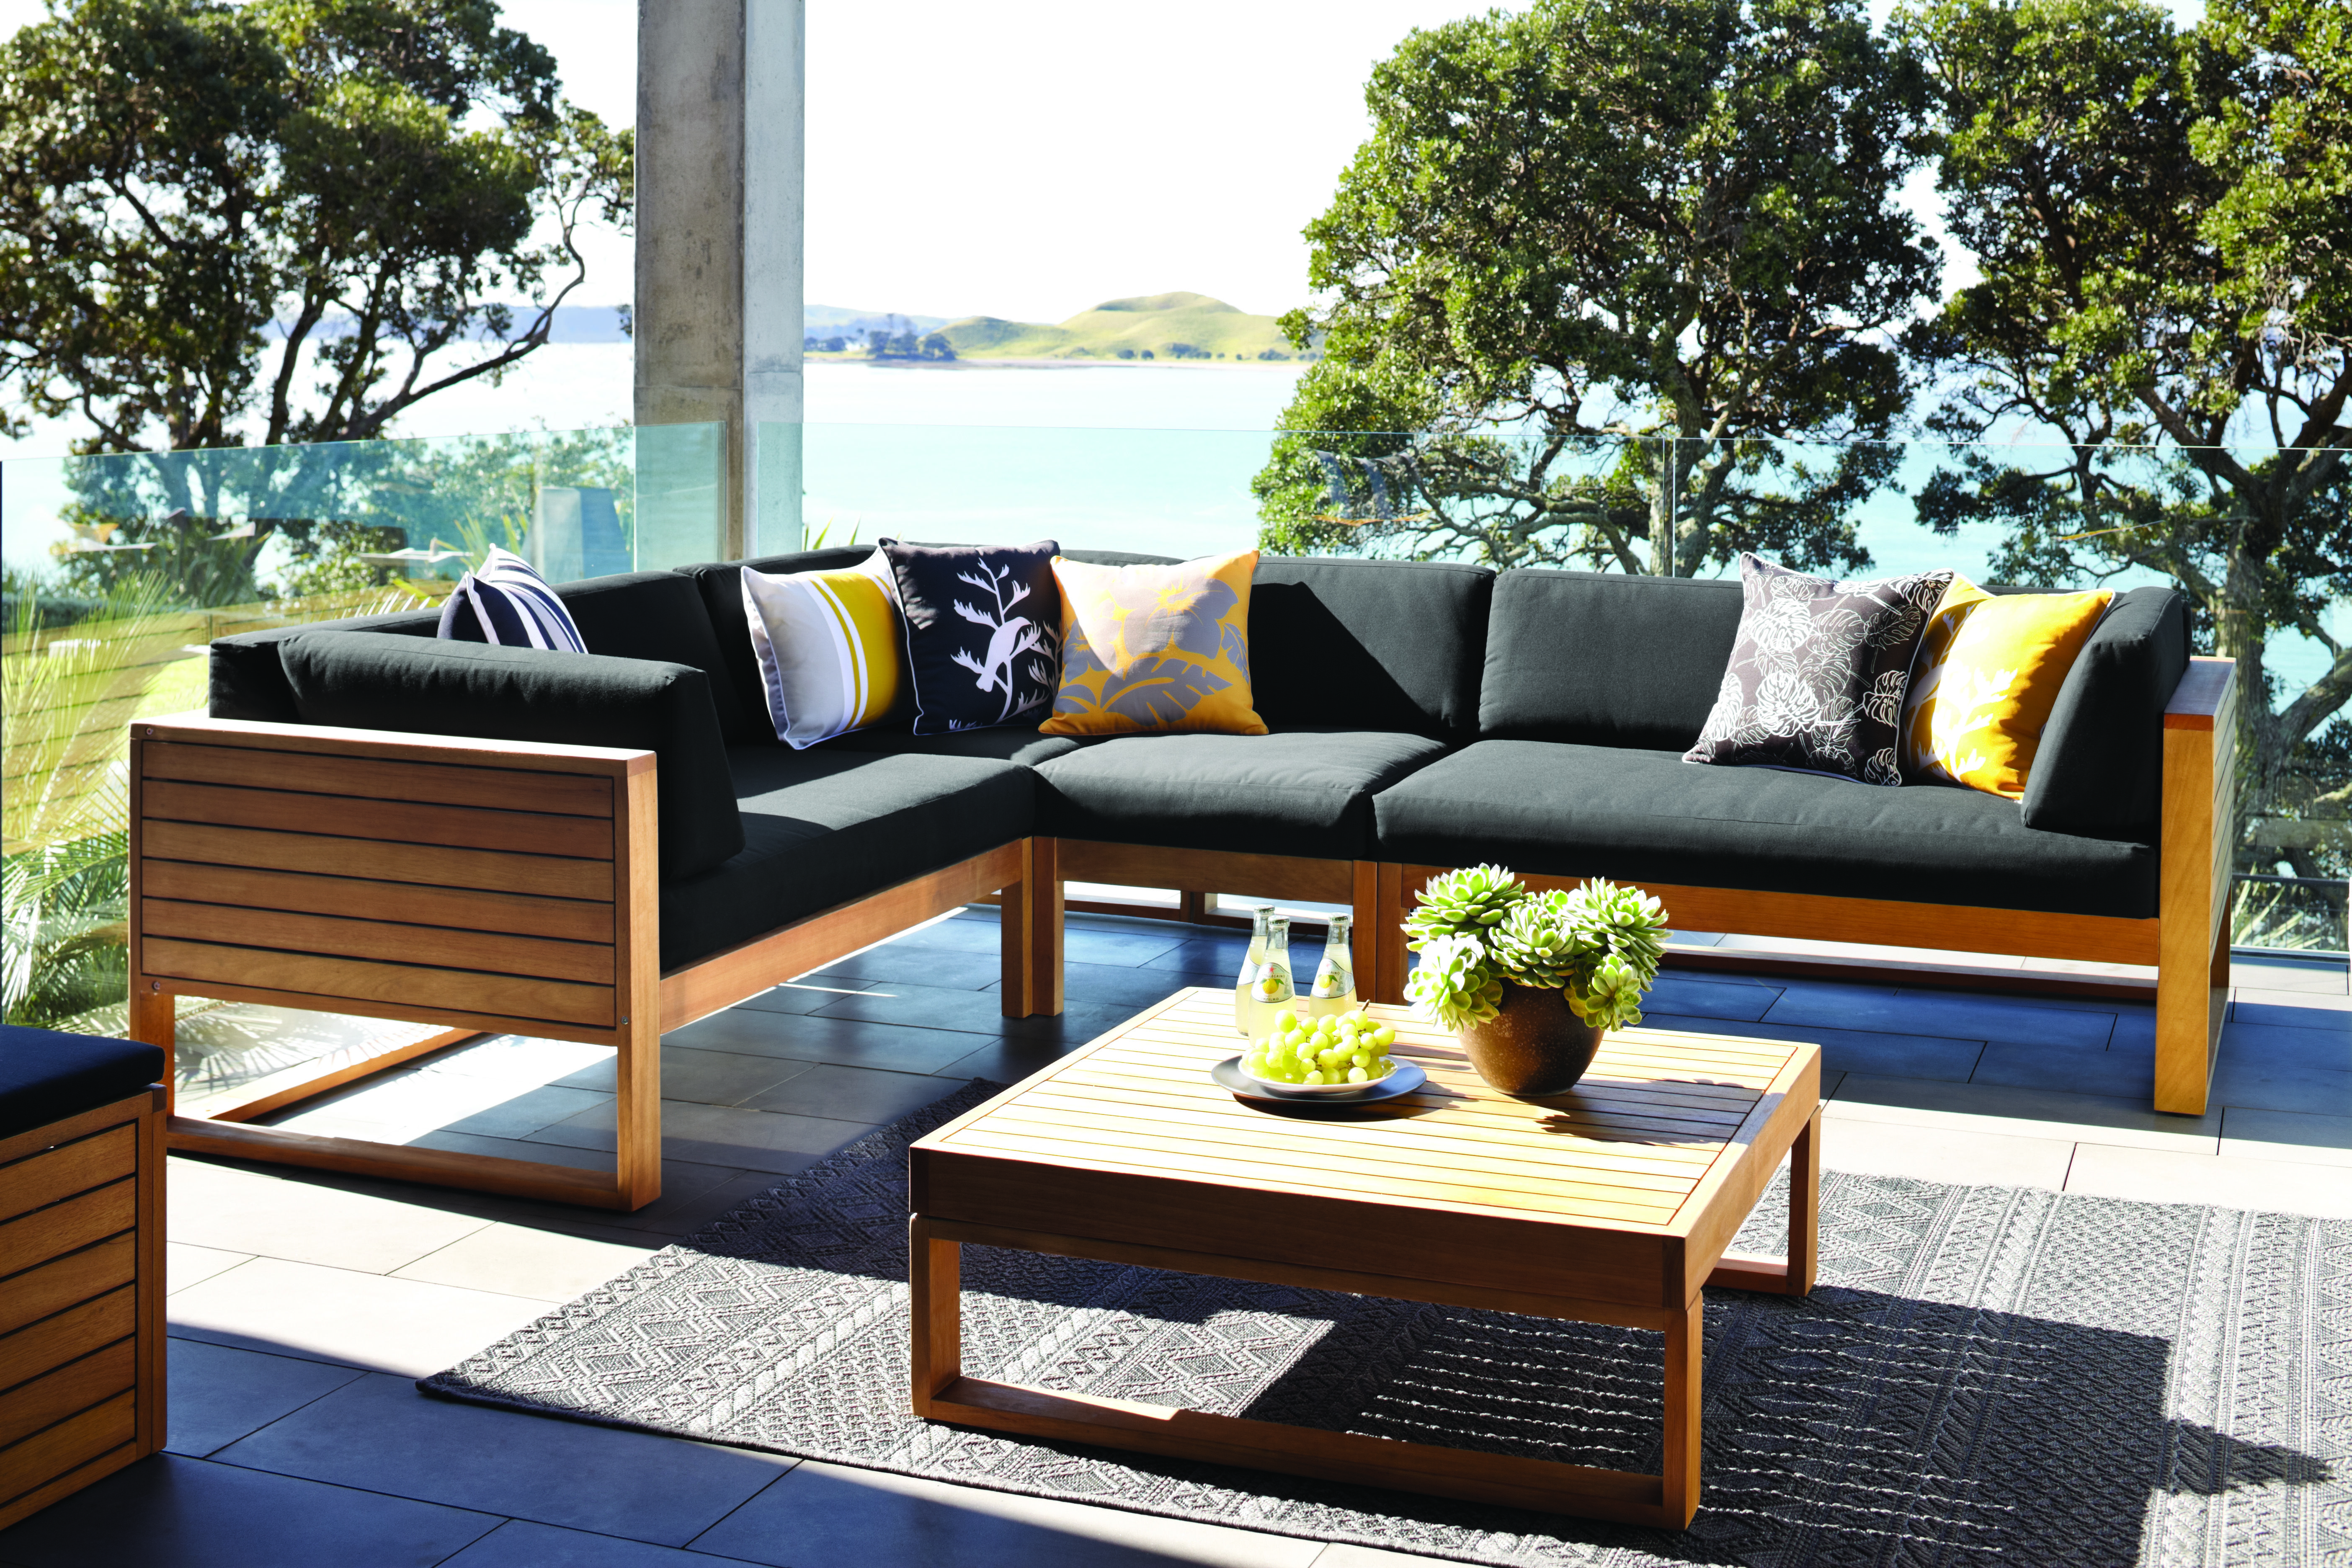 the ventura outdoor corner lounge setting offers comfort to relax in